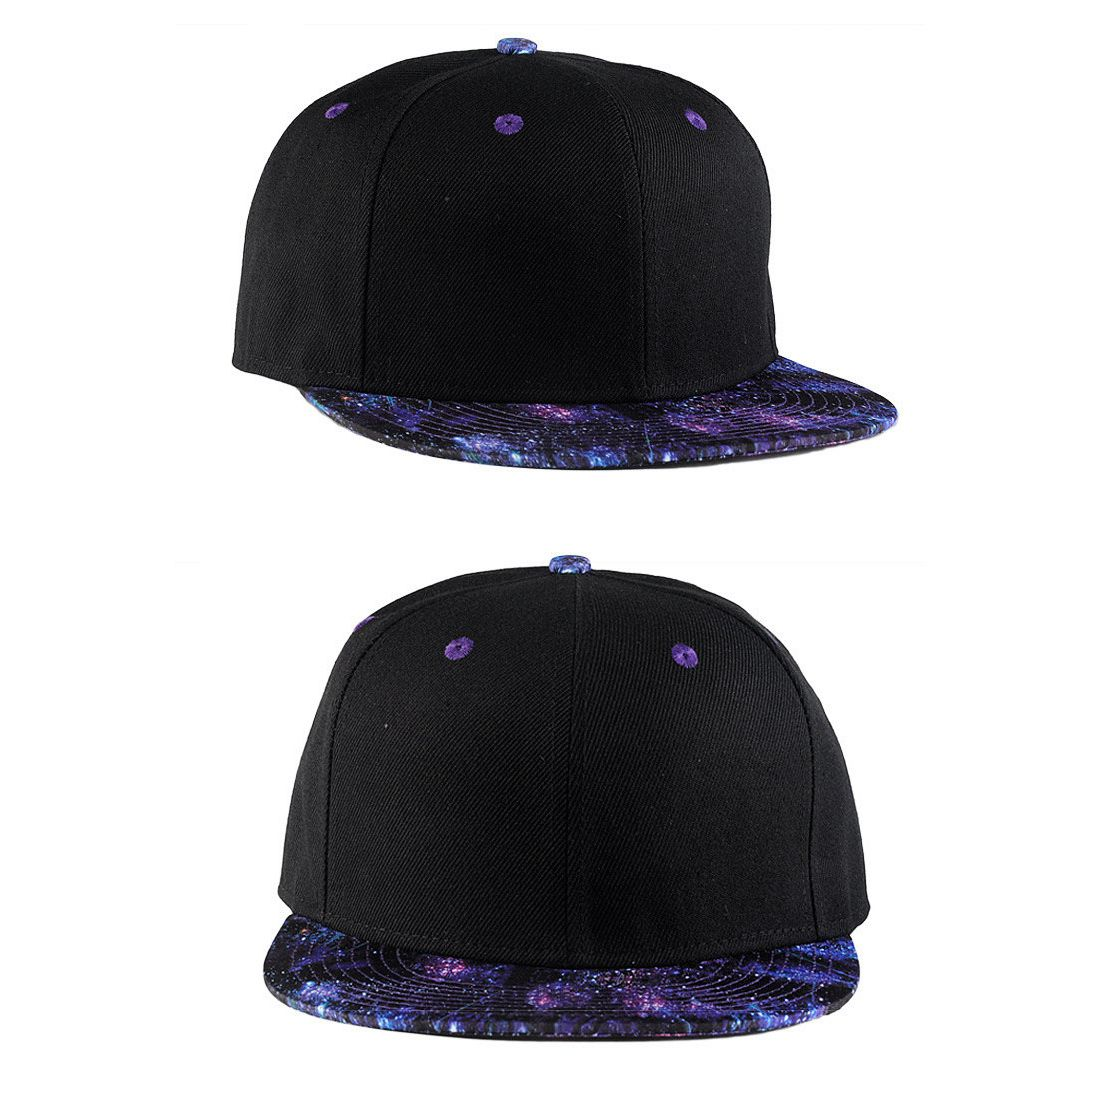 Black With Blue Galaxy Adjustable women Baseball Caps Men's Hip Hop Snapback Flat Bill brim Hats Starry Space Dad Trucker Cap letter embroidery dad hats hip hop baseball caps snapback trucker cap casual summer women men black hat adjustable korean style